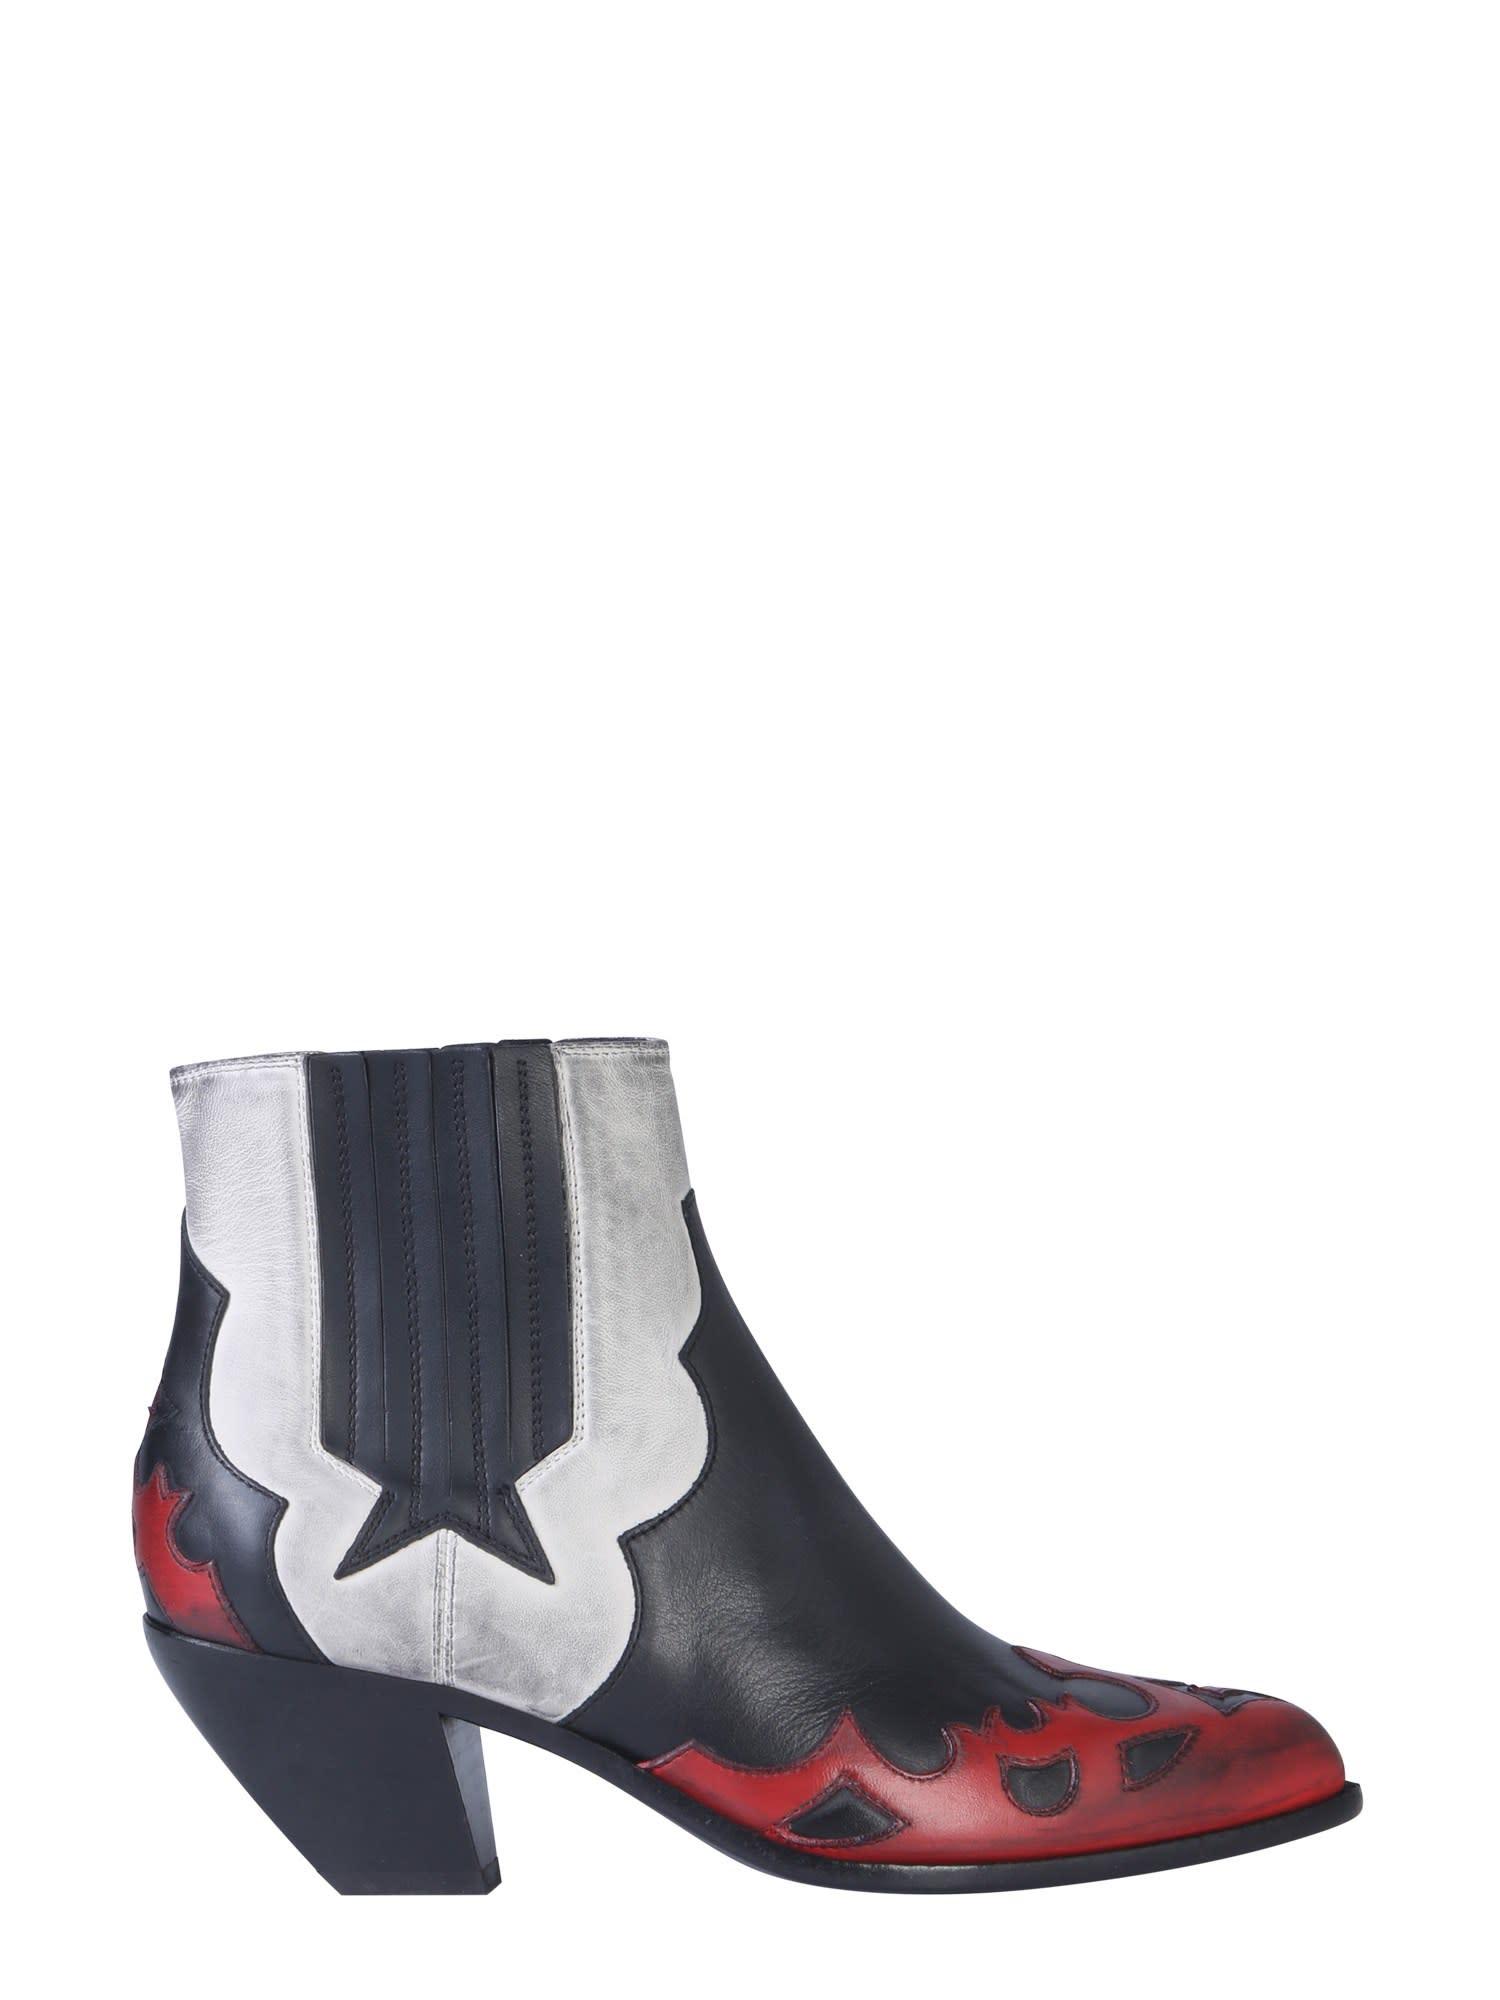 Buy Golden Goose Sunset Flowers Boots online, shop Golden Goose shoes with free shipping